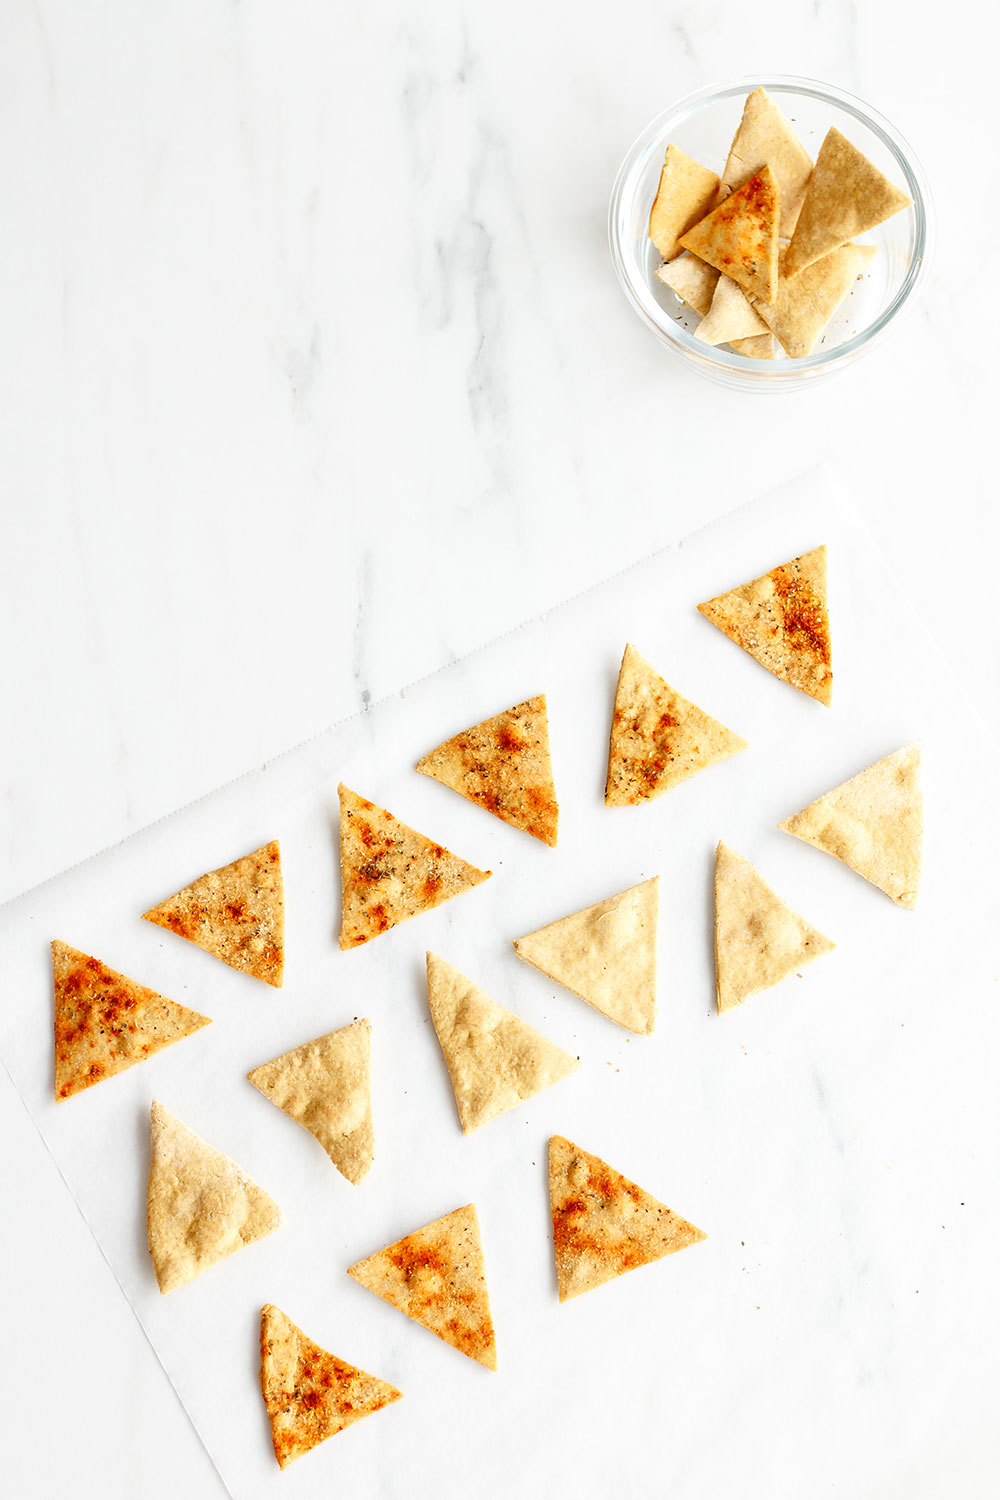 Chickpea Tortilla Chips Recipe: A high-protein and high-fiber savory snack to keep you full and satisfied for longer! https://www.spotebi.com/recipes/chickpea-tortilla-chips/